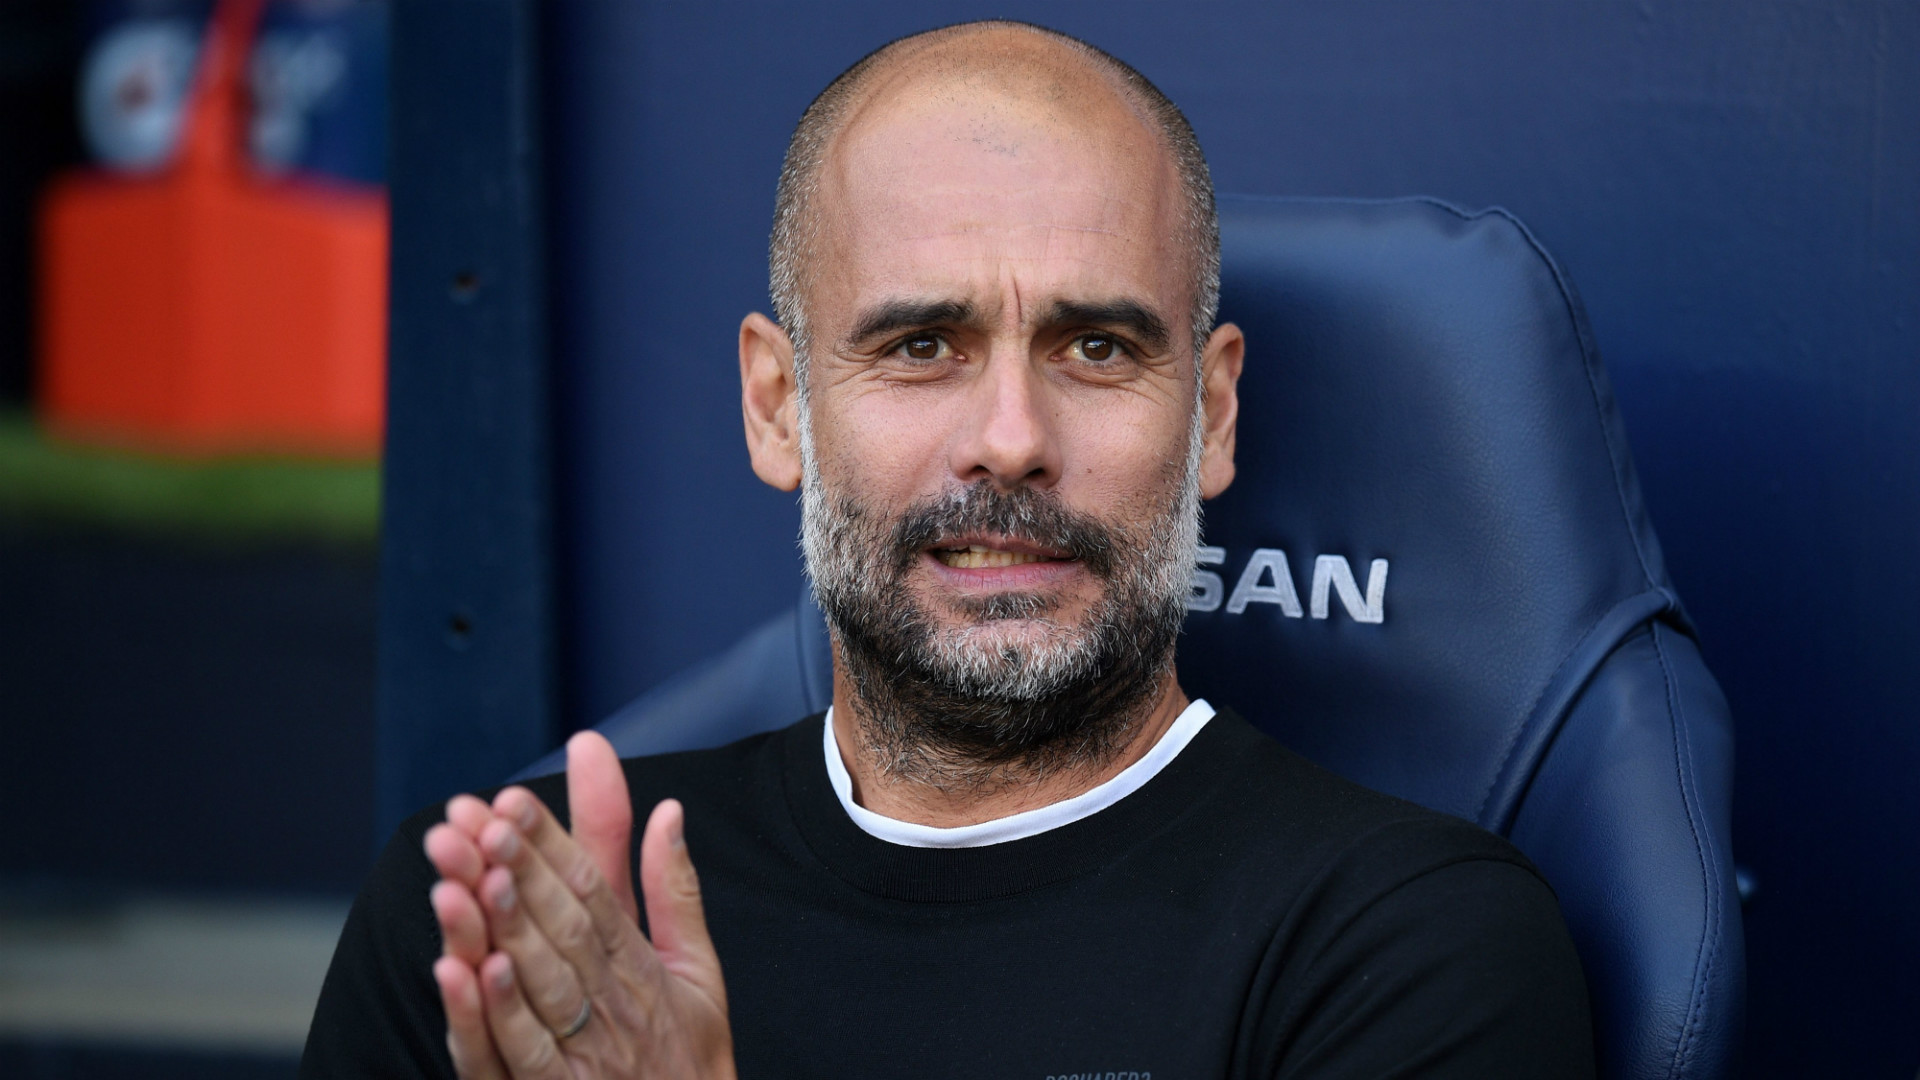 Manchester City news: Pep Guardiola says he likes VAR as it